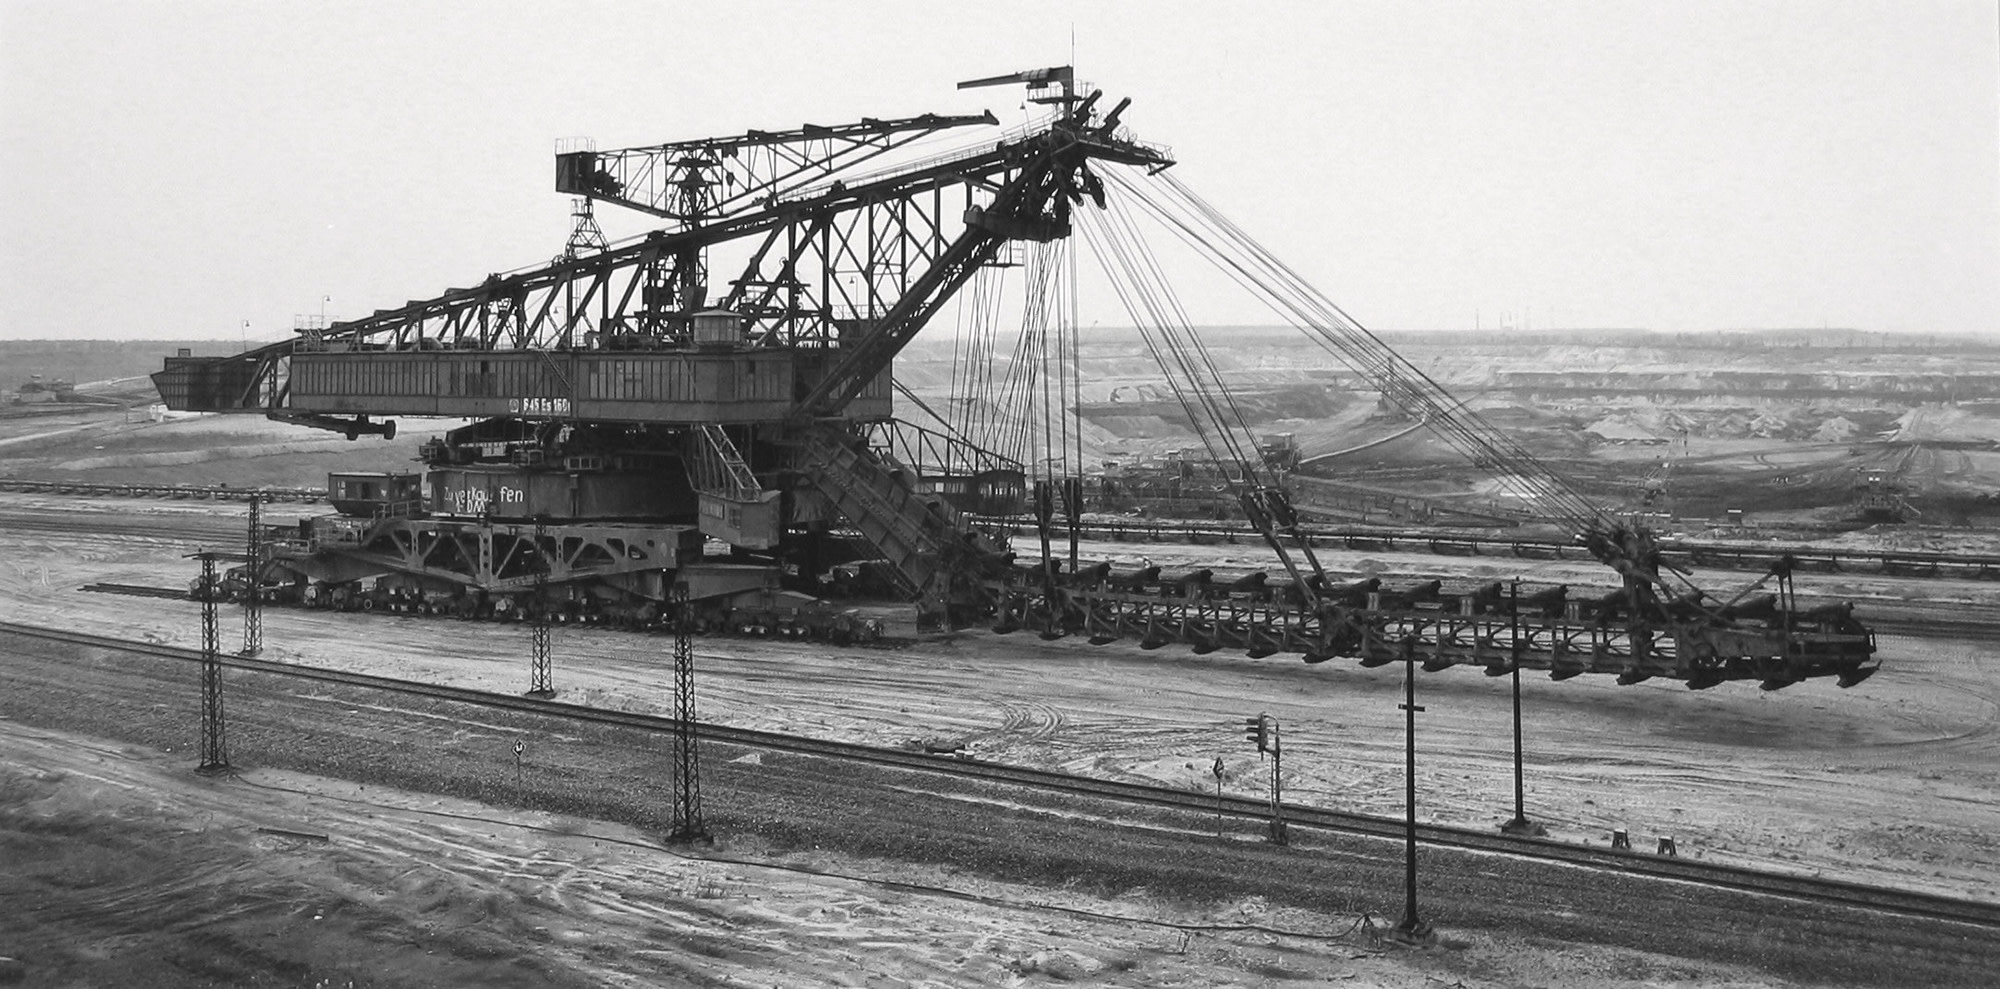 "<span class=""link fancybox-details-link""><a href=""/artists/128-claudia-fahrenkemper/works/35244-claudia-fahrenkemper-bucket-chain-excavator-lignite-mine-grobern-germany-1991/"">View Detail Page</a></span><div class=""artist""><strong>Claudia Fährenkemper</strong></div> b. 1959 <div class=""title""><em>Bucket Chain Excavator, Lignite Mine, Gröbern, Germany</em>, 1991</div> <div class=""signed_and_dated"">From the series ""Mining Machinery""<br /> Signed, titled, dated, and editioned, in pencil, au verso<br /> Printed in 2019</div> <div class=""medium"">Gelatin silver print</div> <div class=""dimensions"">10 ½ x 19 ¾ inch (26.67 x 50.17 cm)</div> <div class=""edition_details"">Edition of 8 + 3 APs (#1/8)</div>"